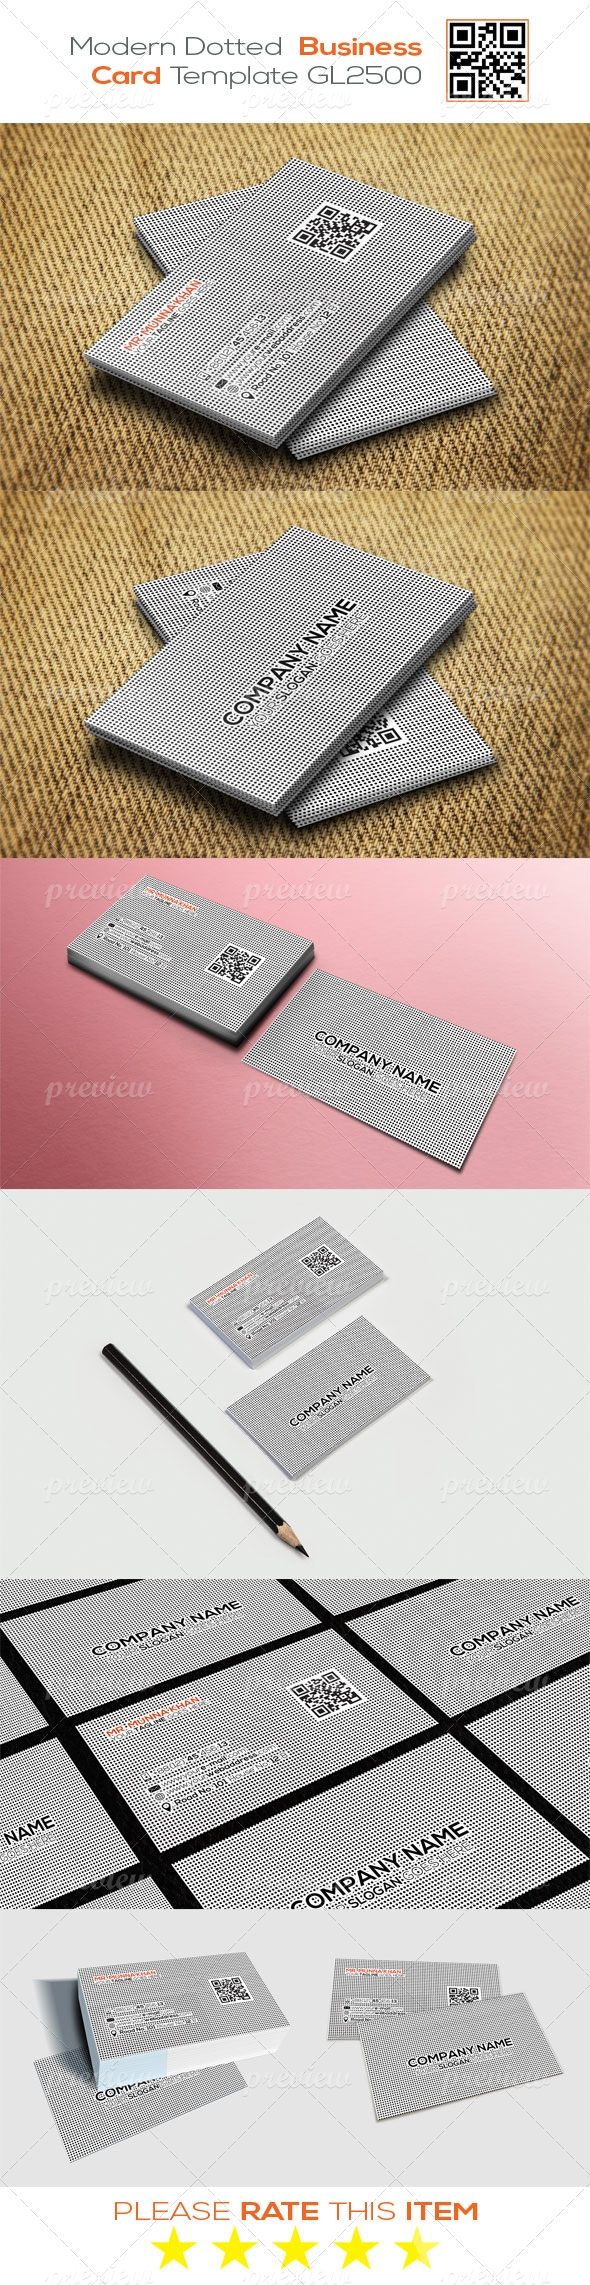 Modern Dotted Business Card Template GL2500